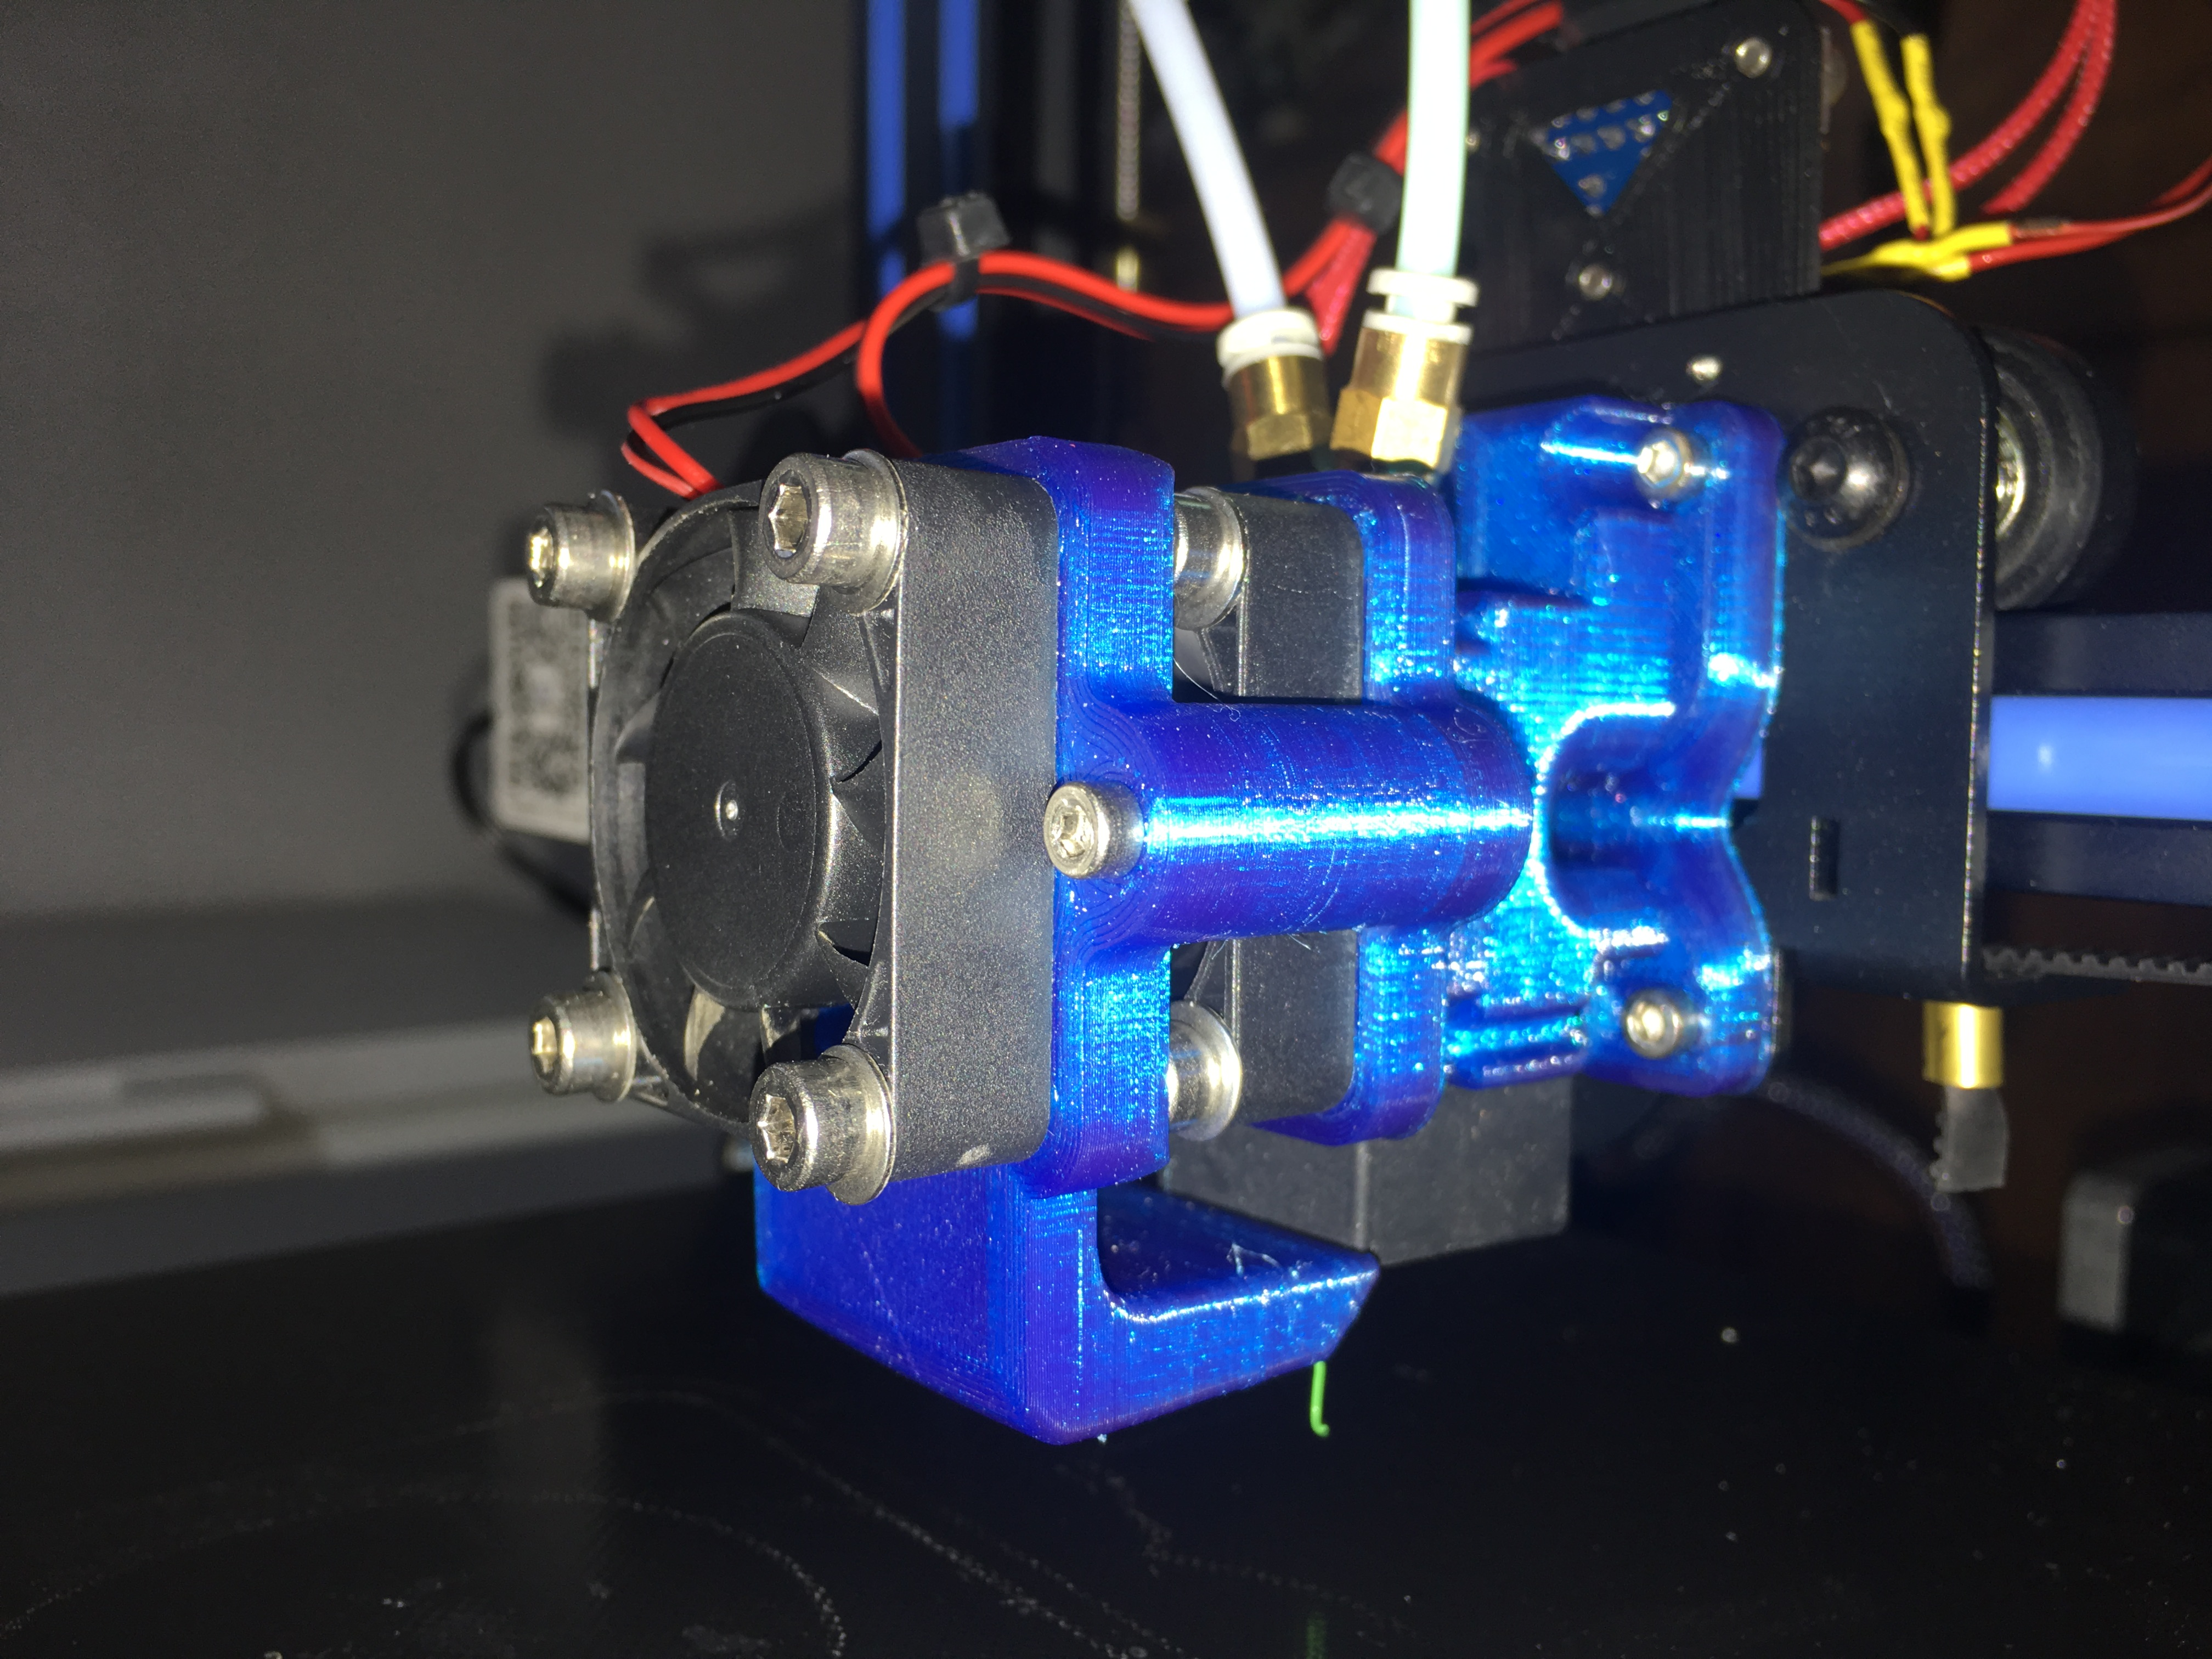 BigMac MKII - Geeetech A20M / A10M cyclop hotend adapter by